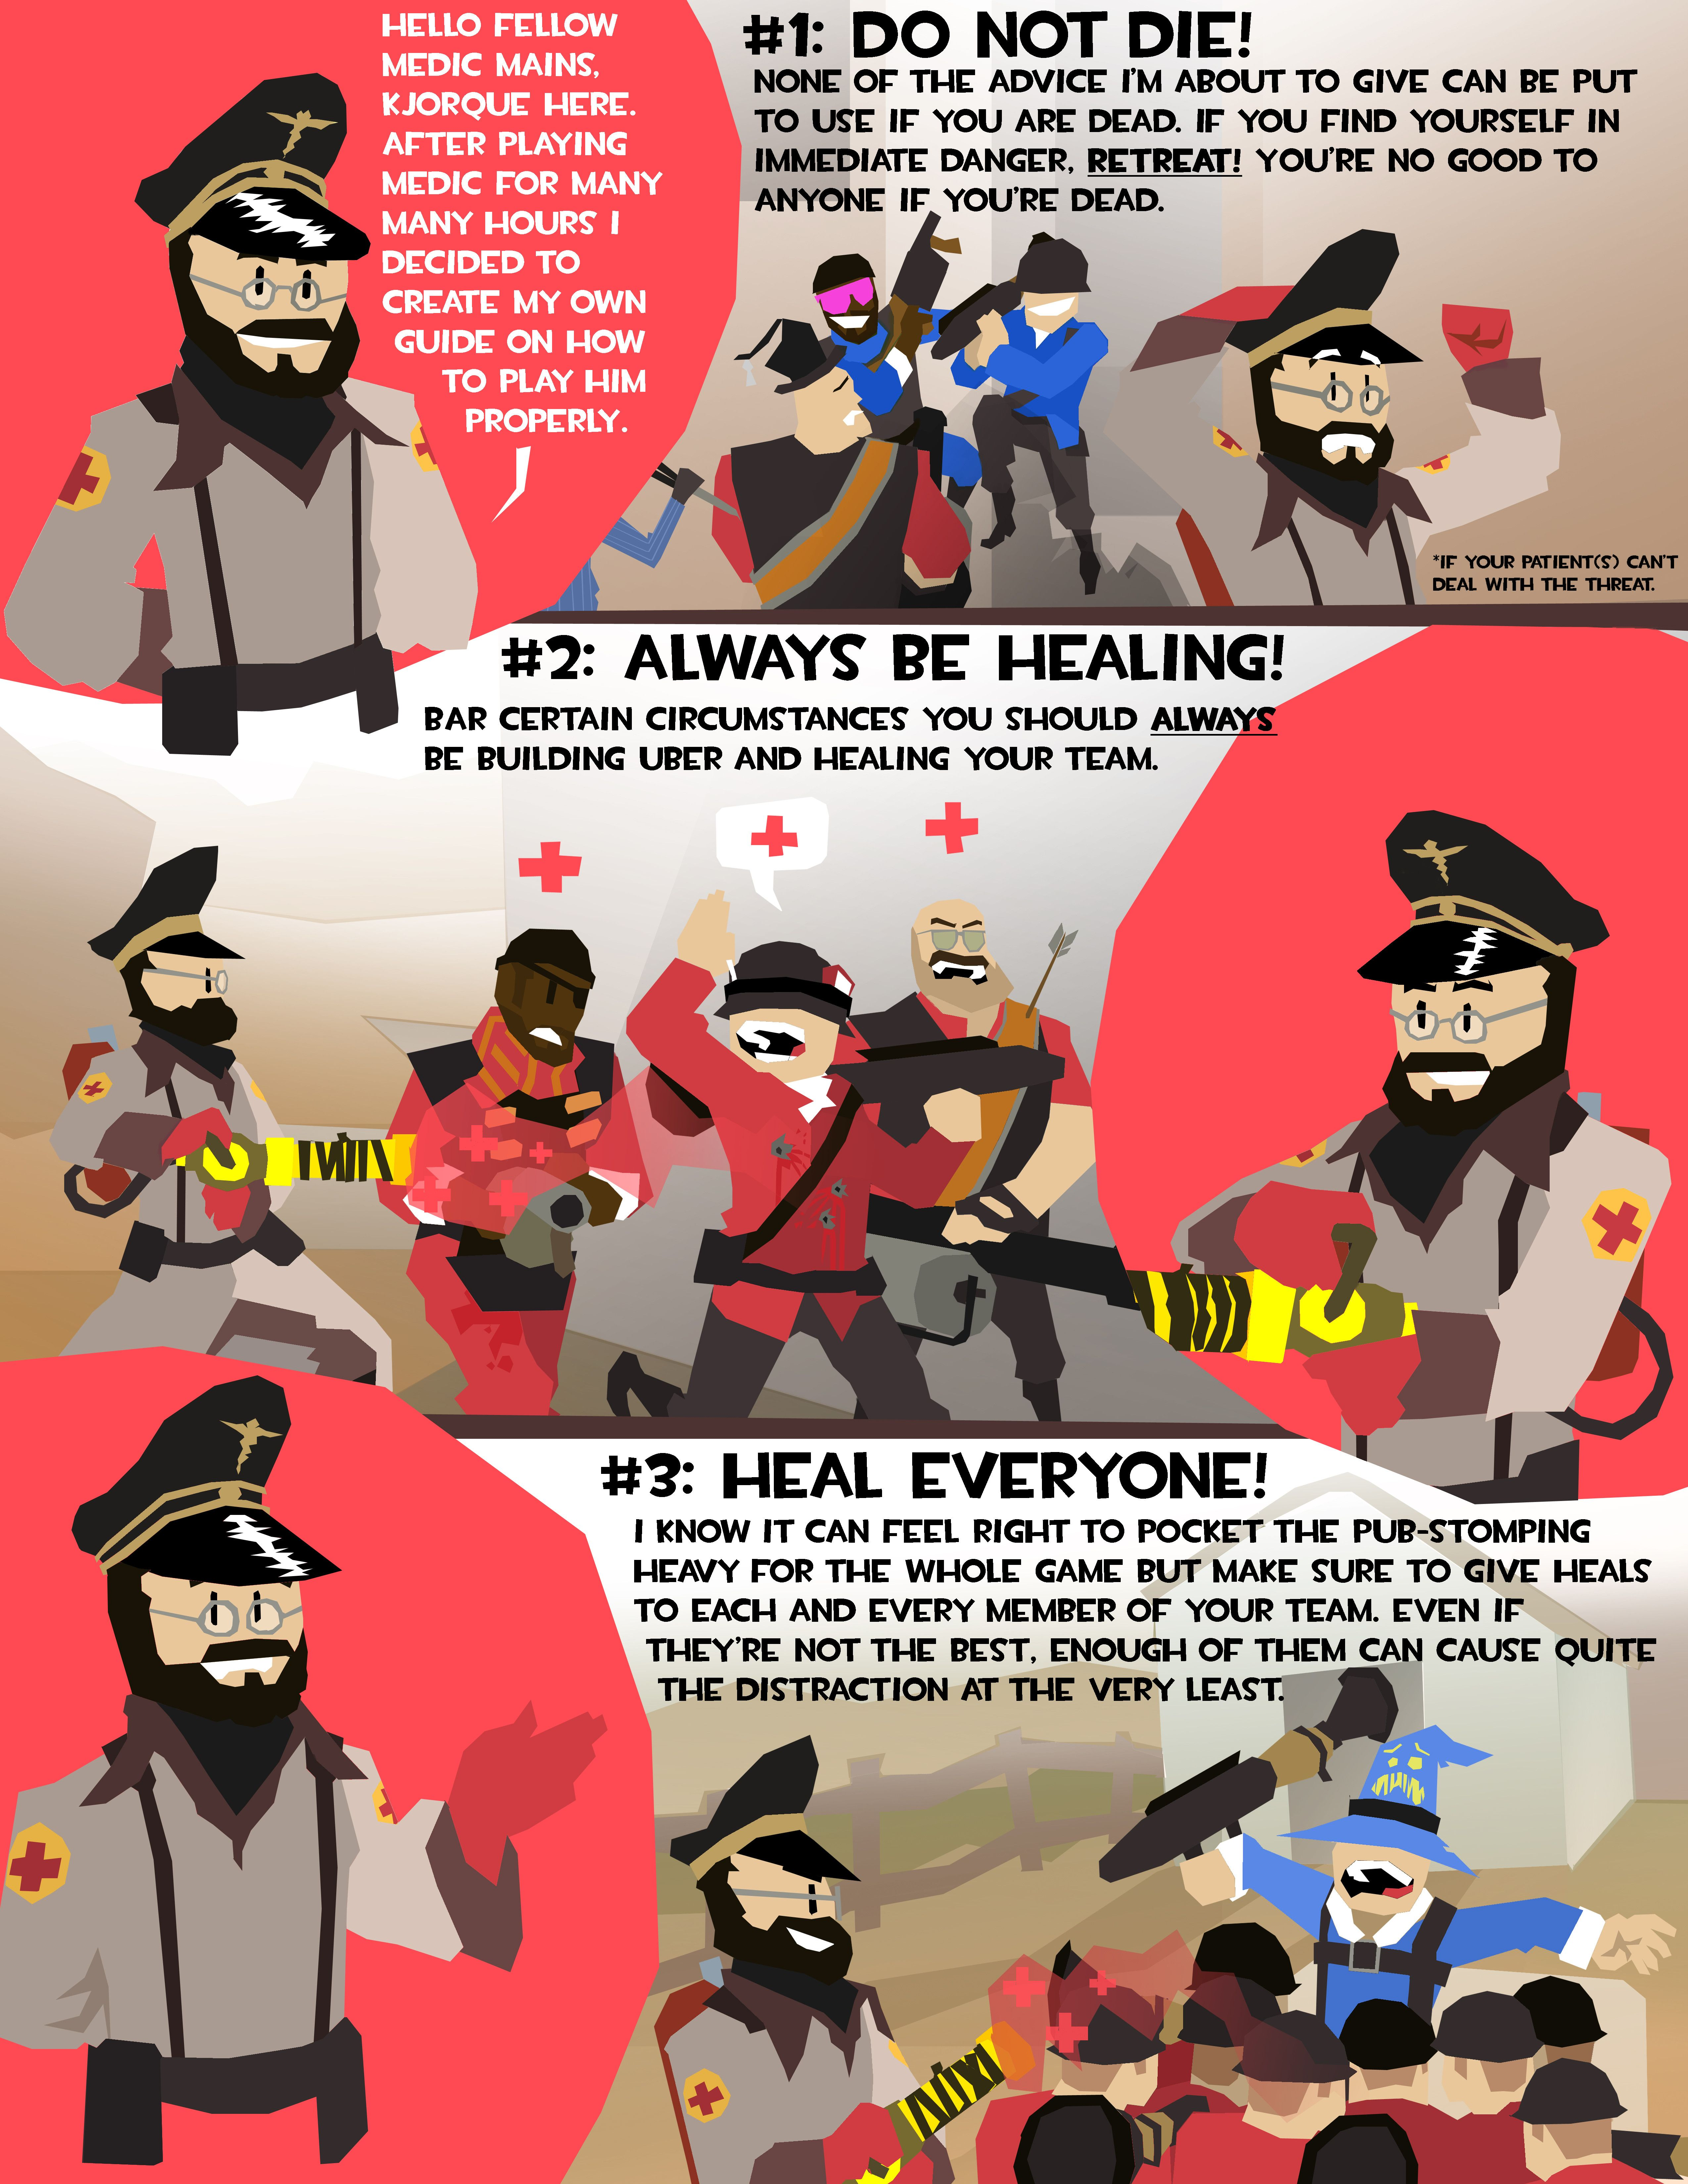 My Illustrated Guide to Playing Medic [OC] #games #teamfortress2 #steam #tf2  #SteamNewRelease #gaming #Valve